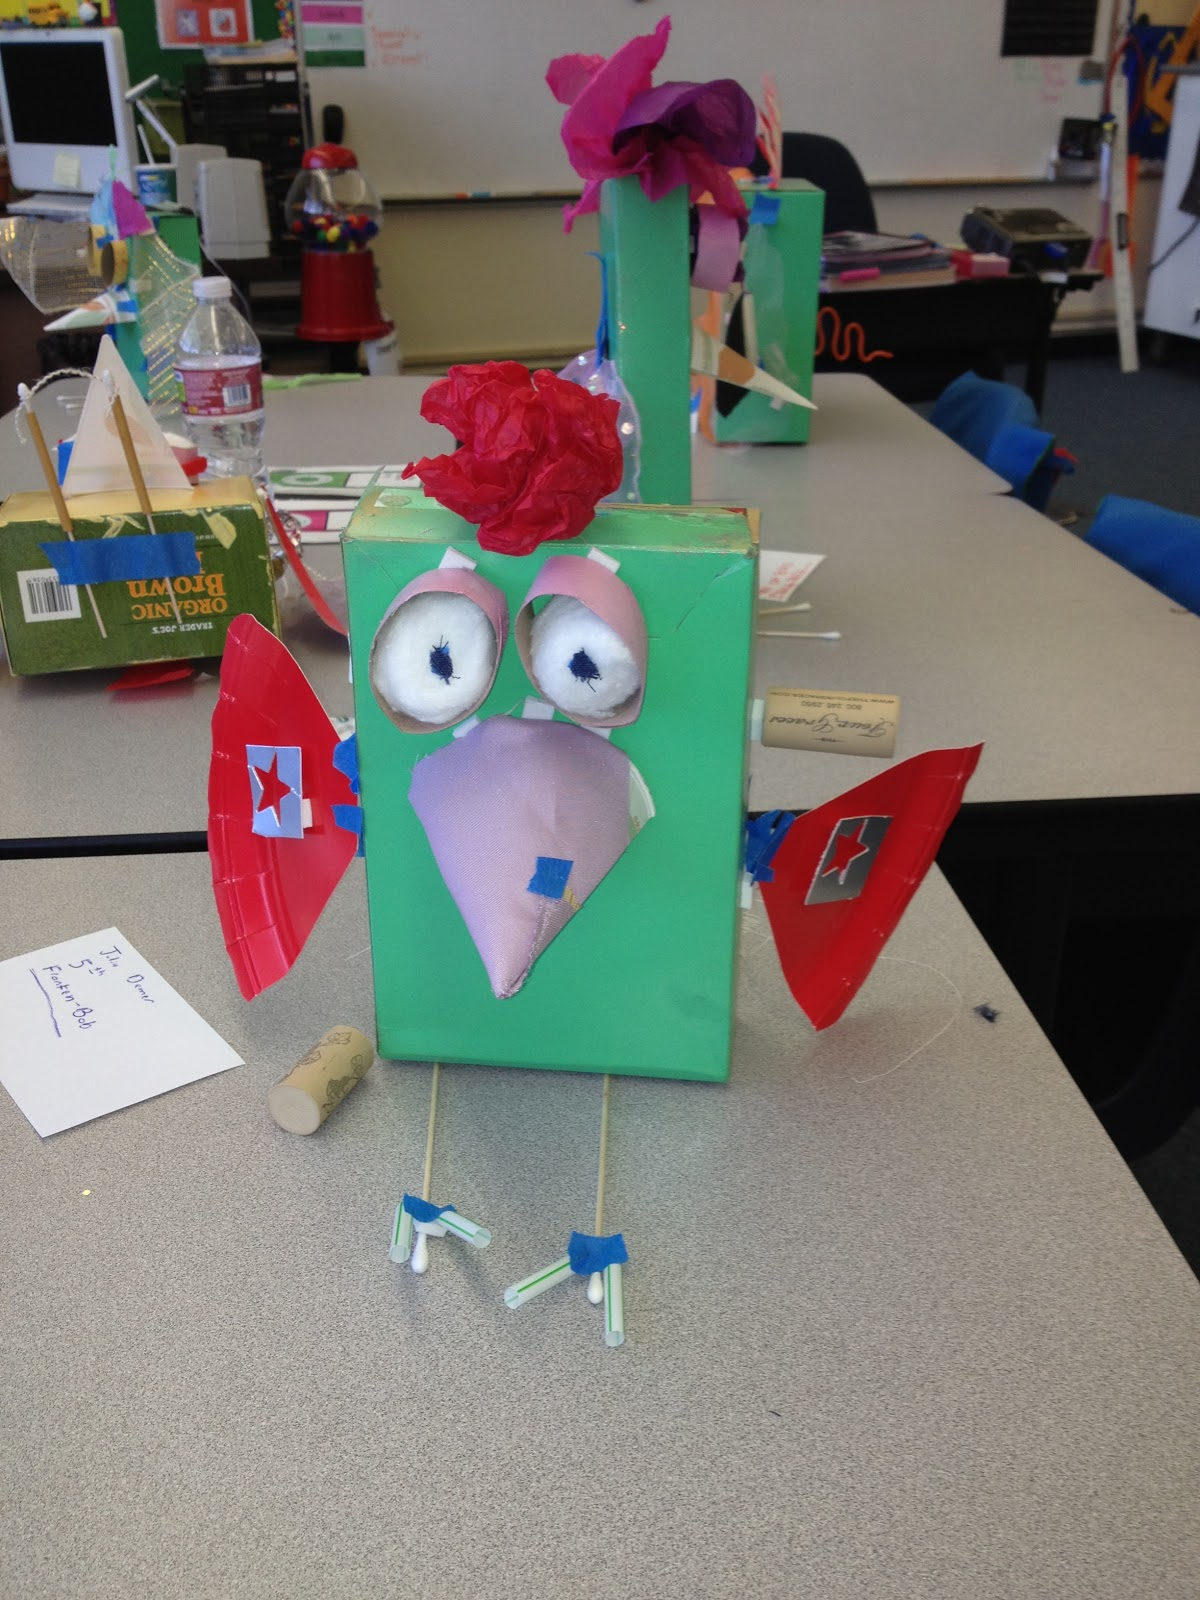 Mrs lyon 39 s blog teaching the art of possibility smart for Project using recyclable items